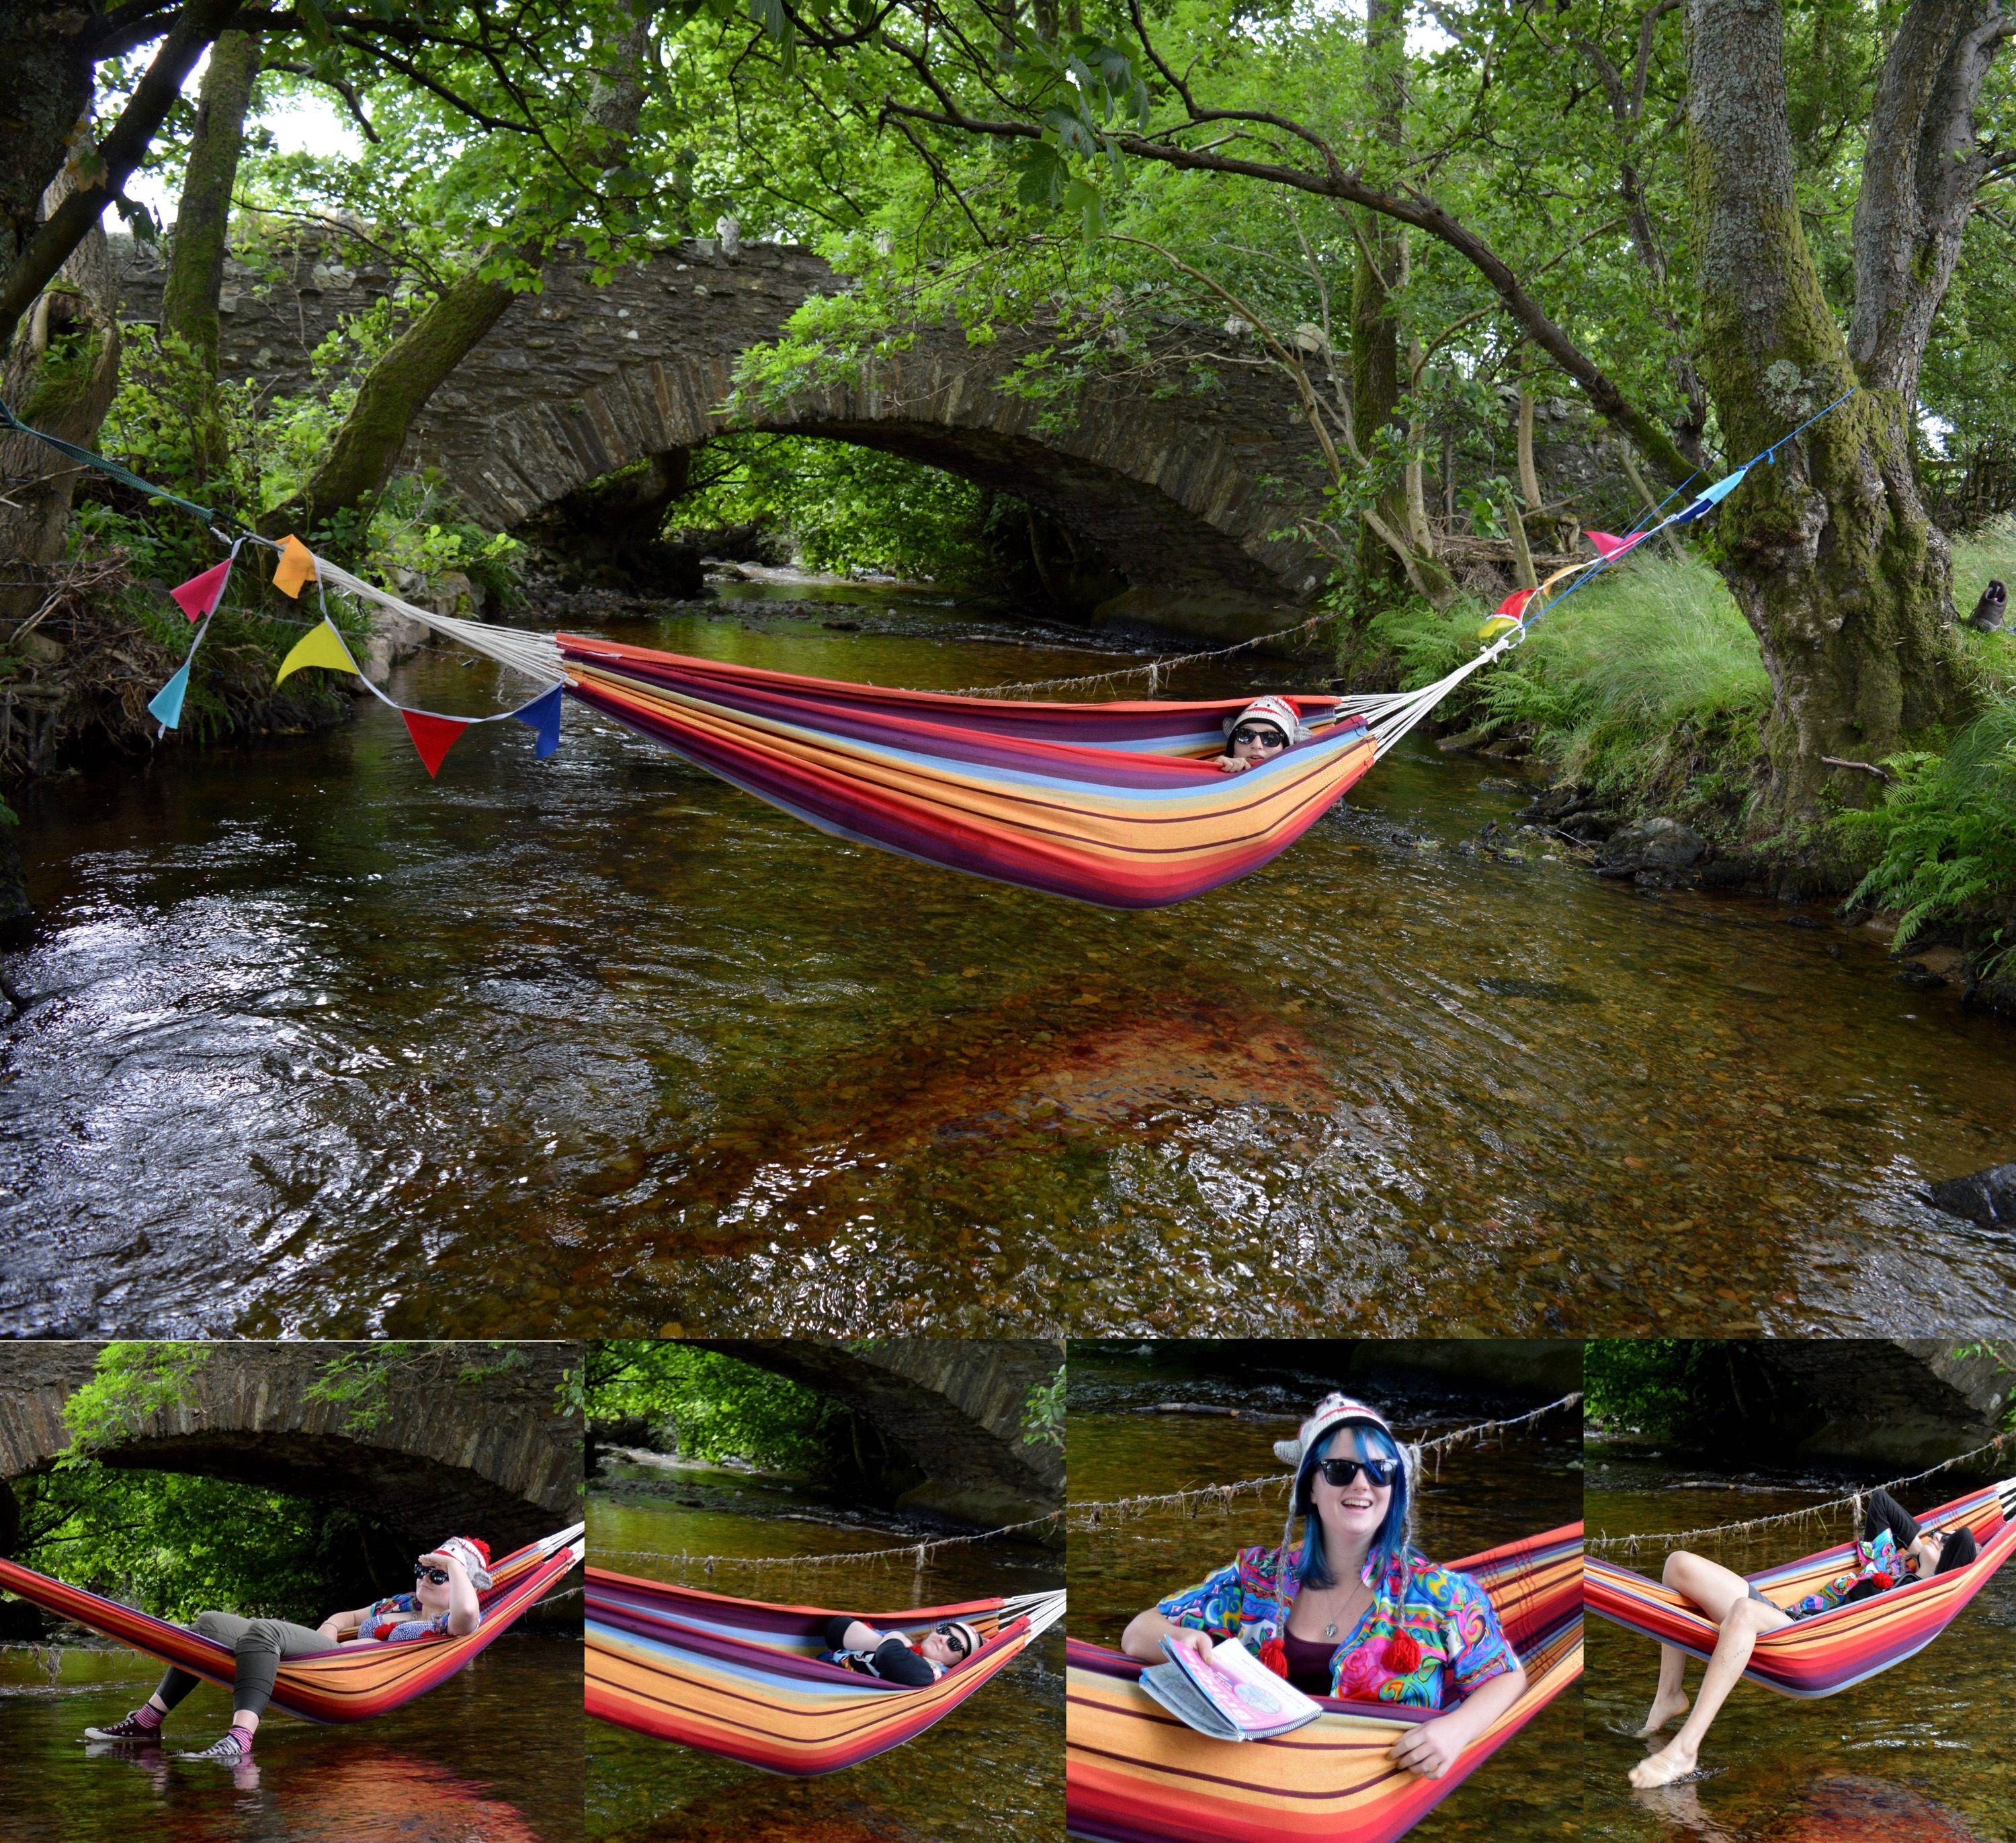 GISHWHES 2015 - Team Apokaleypse - Item 3 - Kick Back in a Hammock